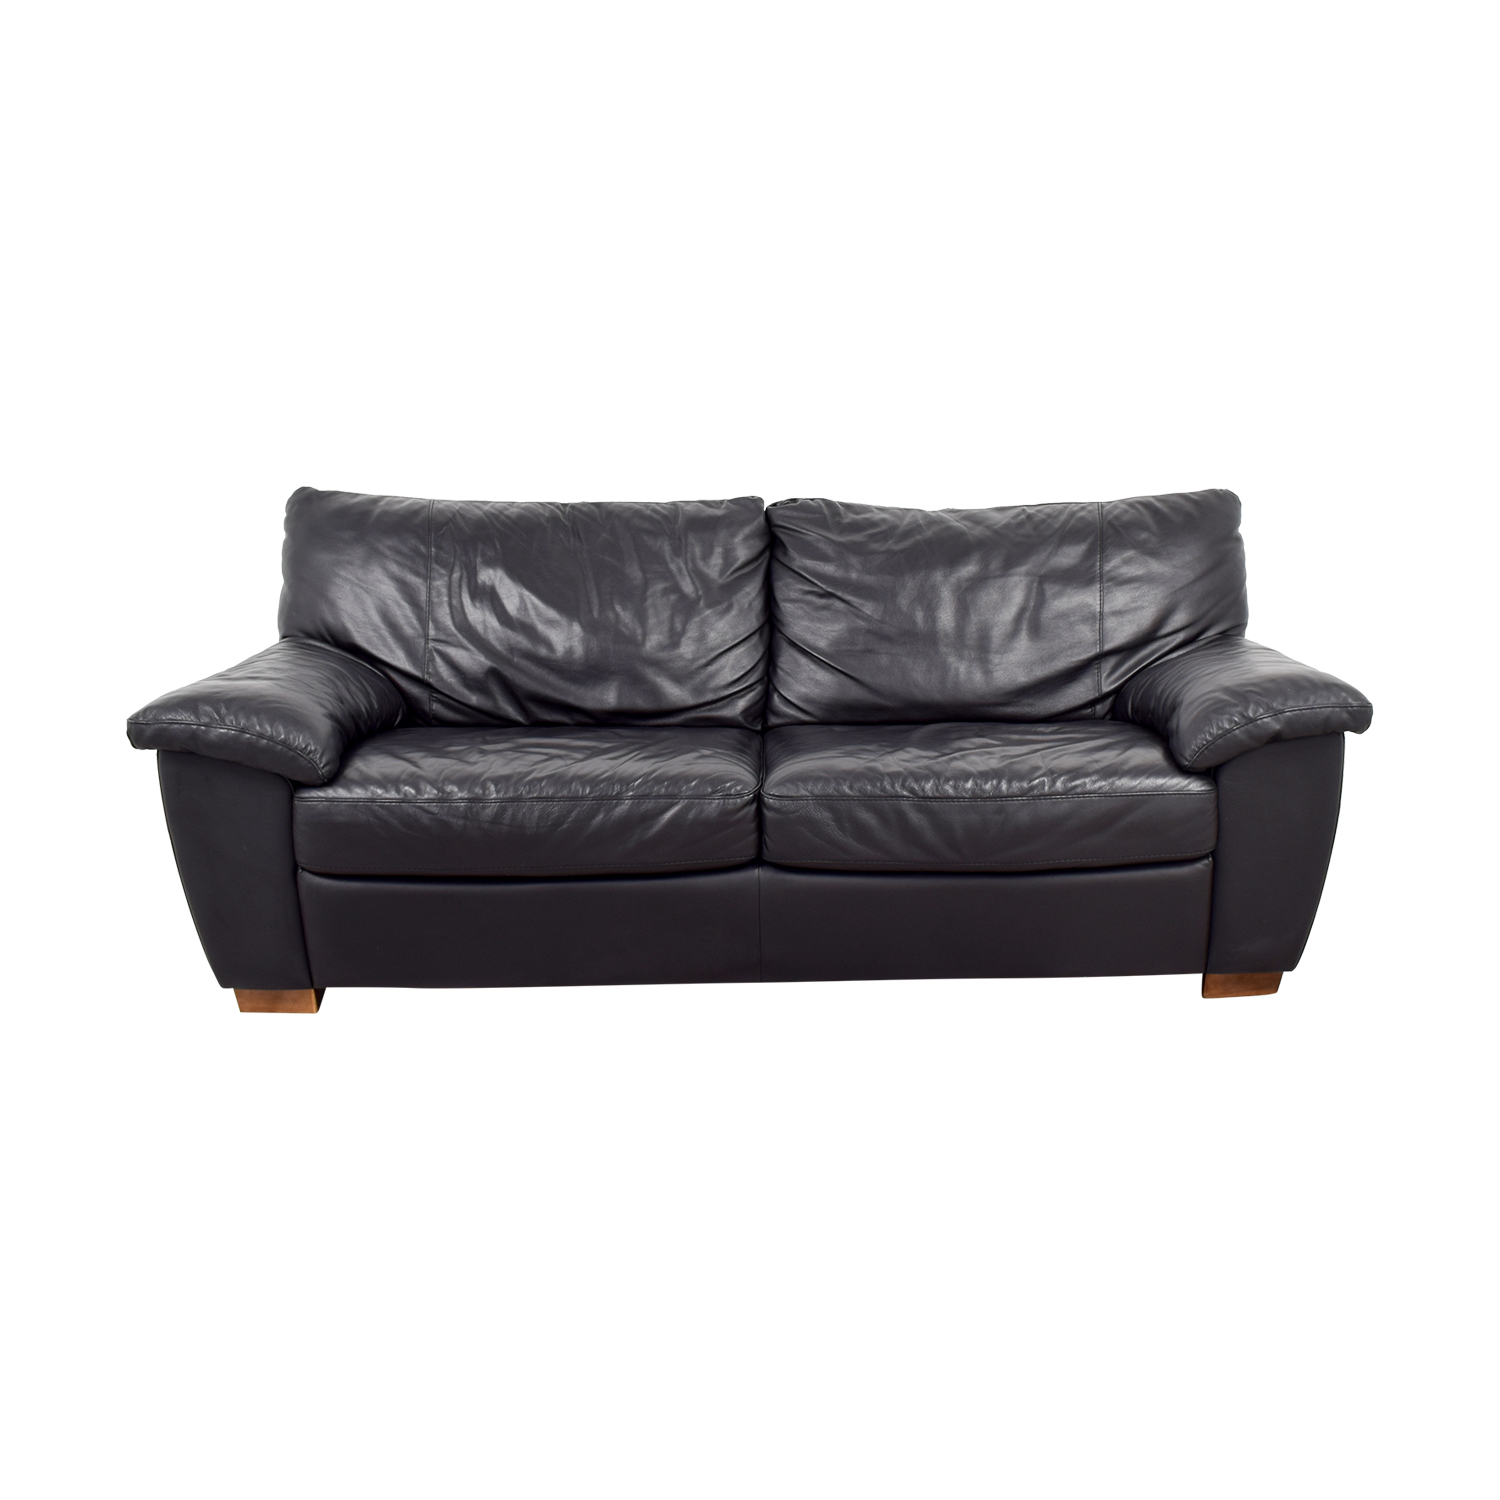 IKEA IKEA Black Leather Two-Cushion Couch coupon